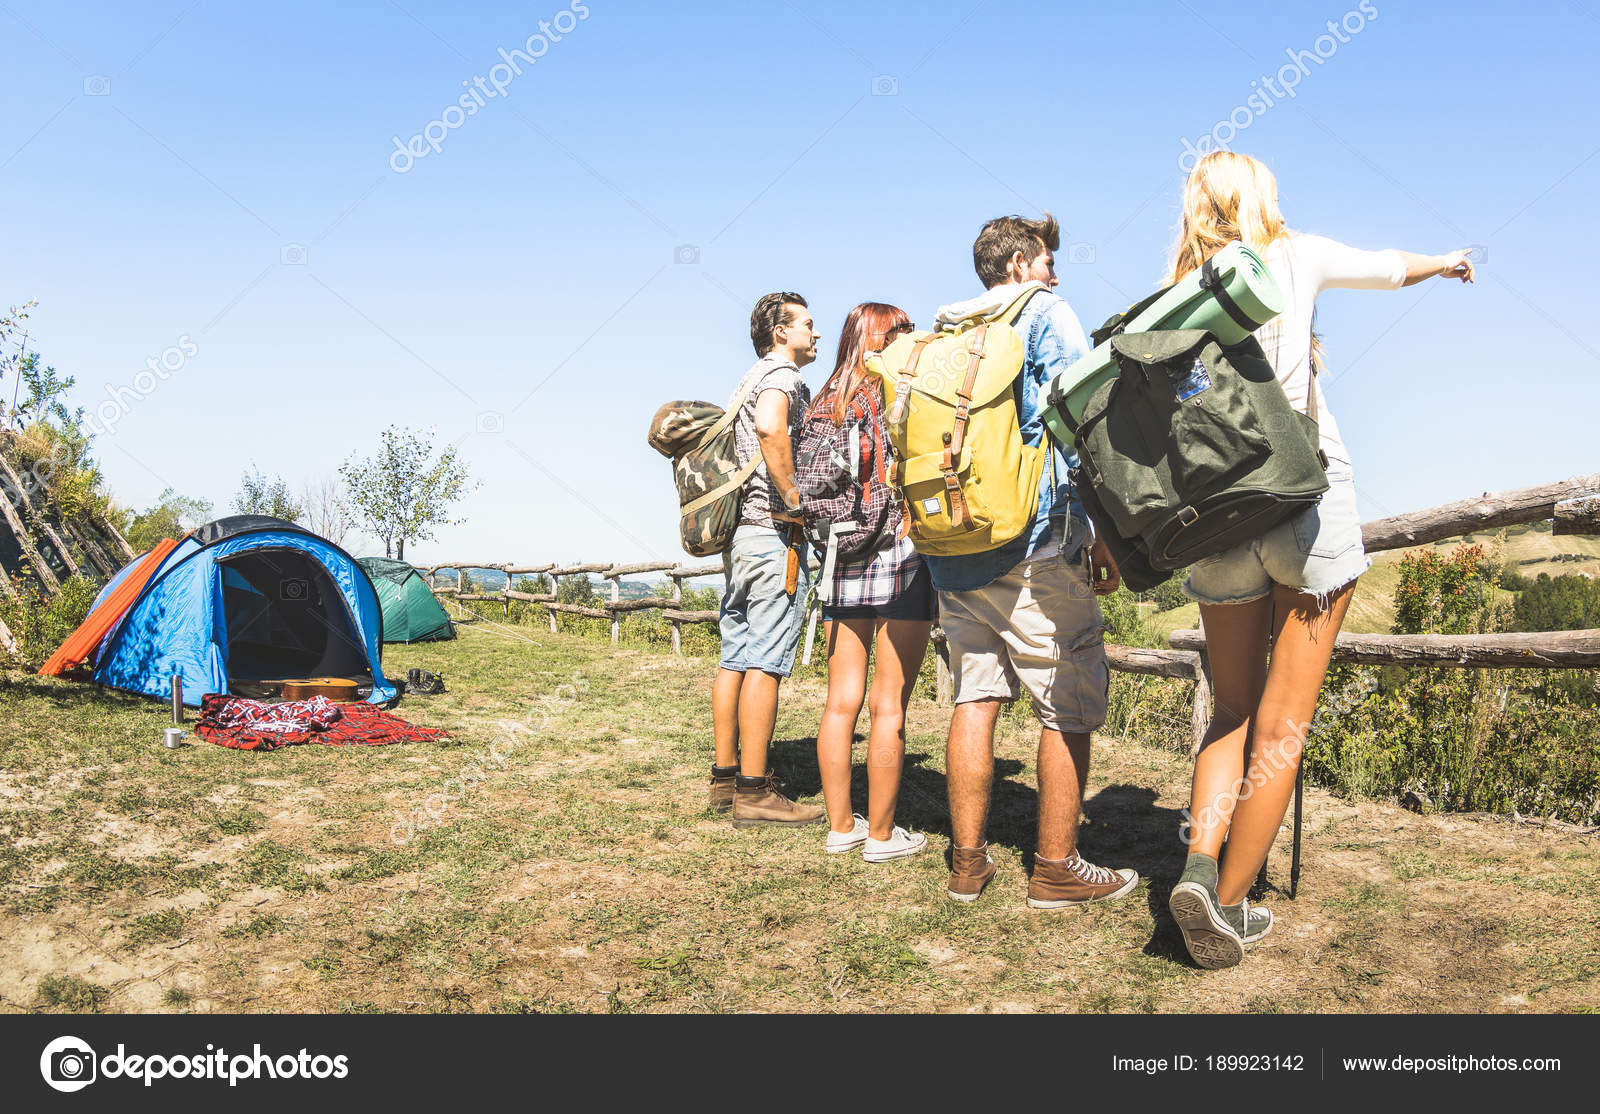 ... trip camp on italian hills on sunny day - Hikers with backpacks and  sticks walking on contry - Wanderlust travel concept with young people at  excursion ...